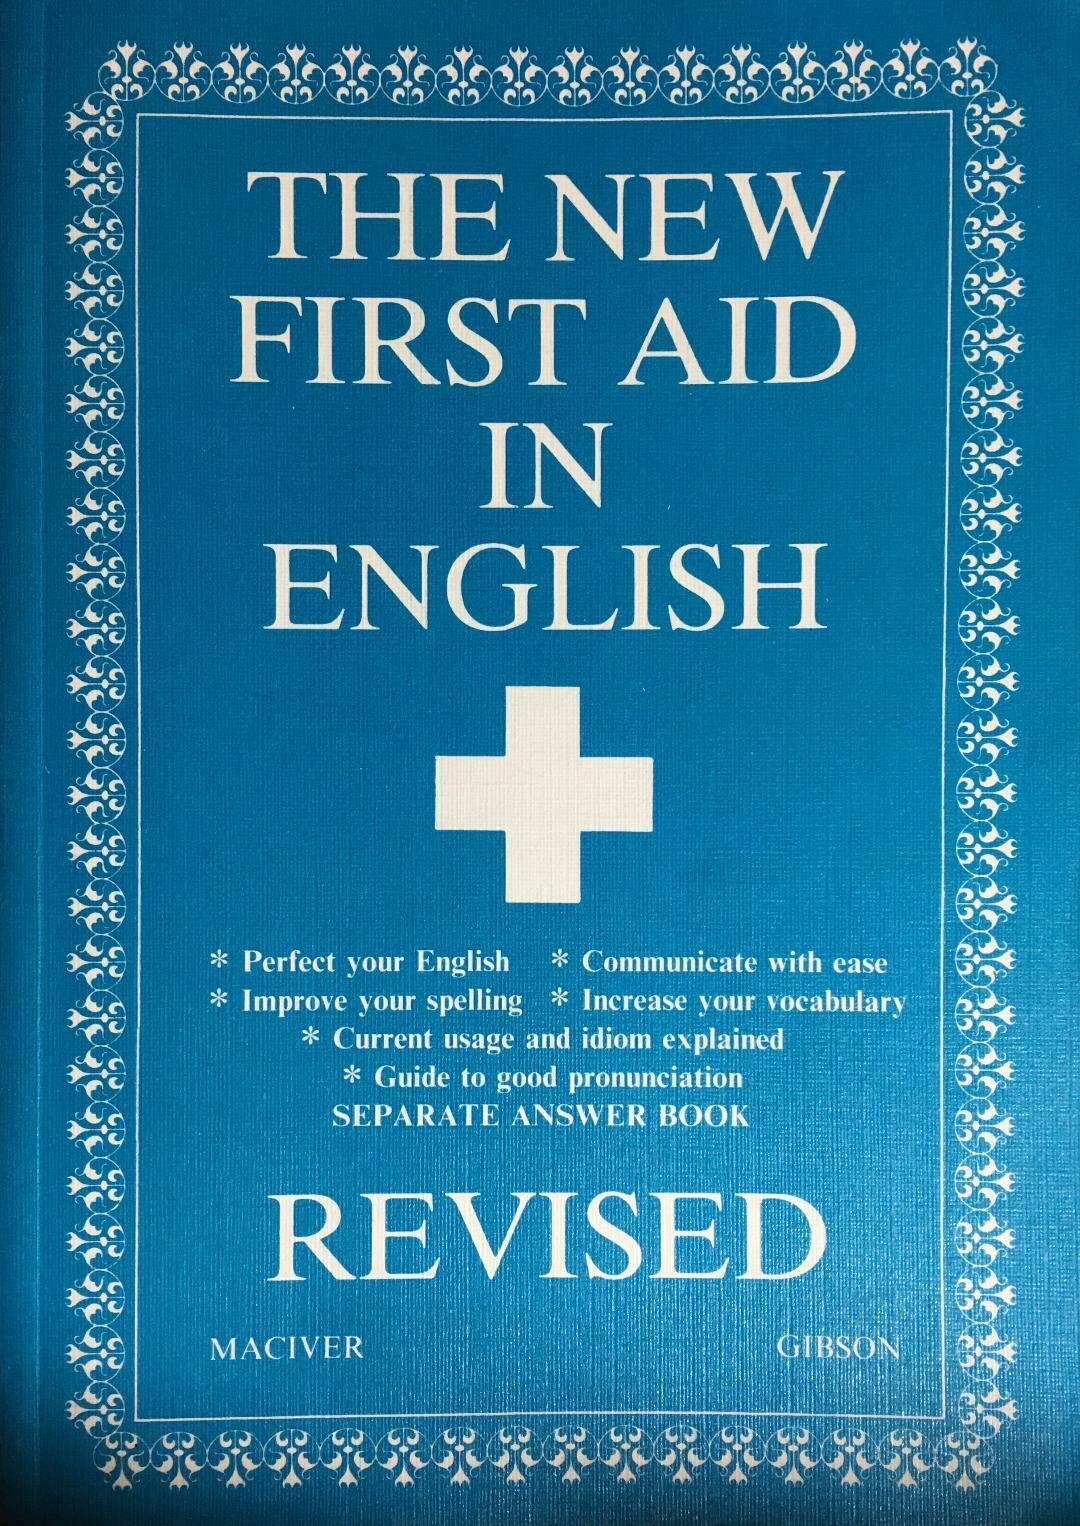 Image of A New First Aid in English, by Angus Maciver, Hodder Gibson, 1986